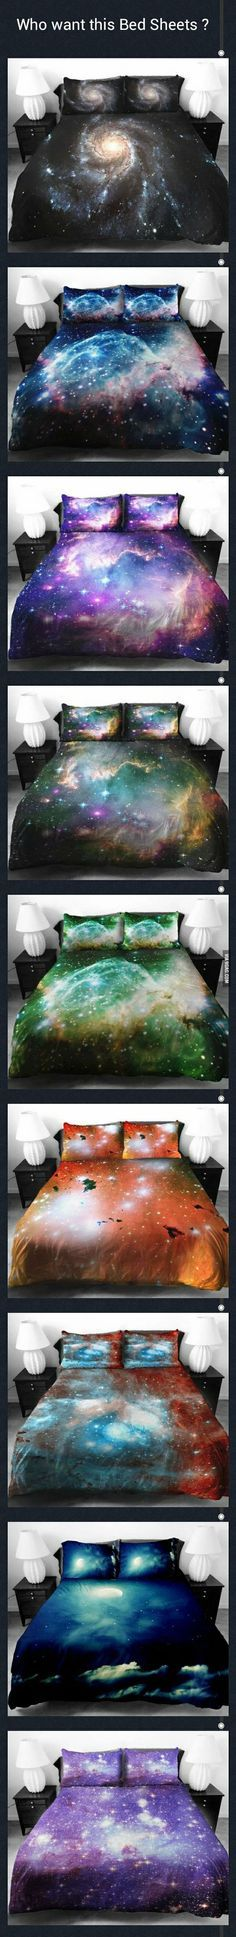 Who wants these Universe Bed Sheets? Shut up & take my money! I WANT THEM ALL